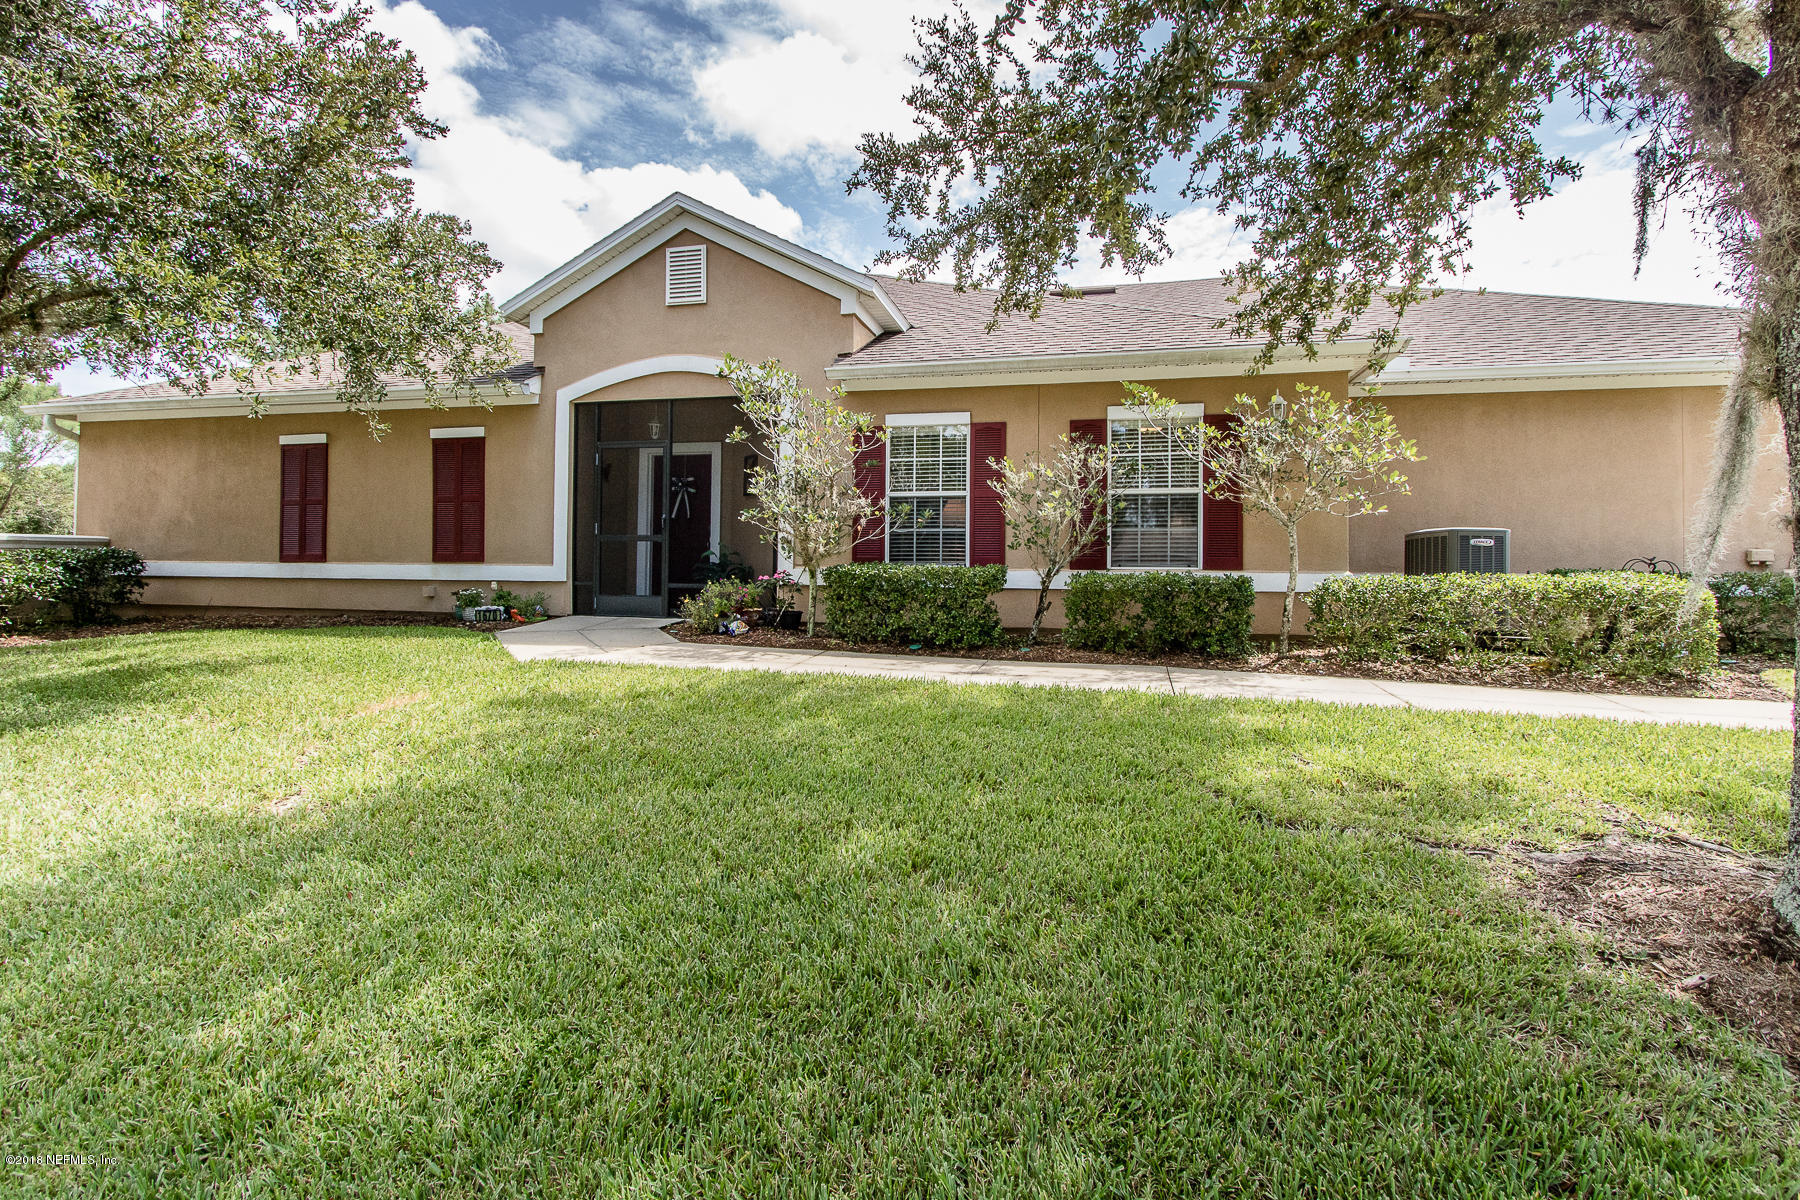 1670 CALMING WATER, FLEMING ISLAND, FLORIDA 32003, 3 Bedrooms Bedrooms, ,2 BathroomsBathrooms,Residential - townhome,For sale,CALMING WATER,952909